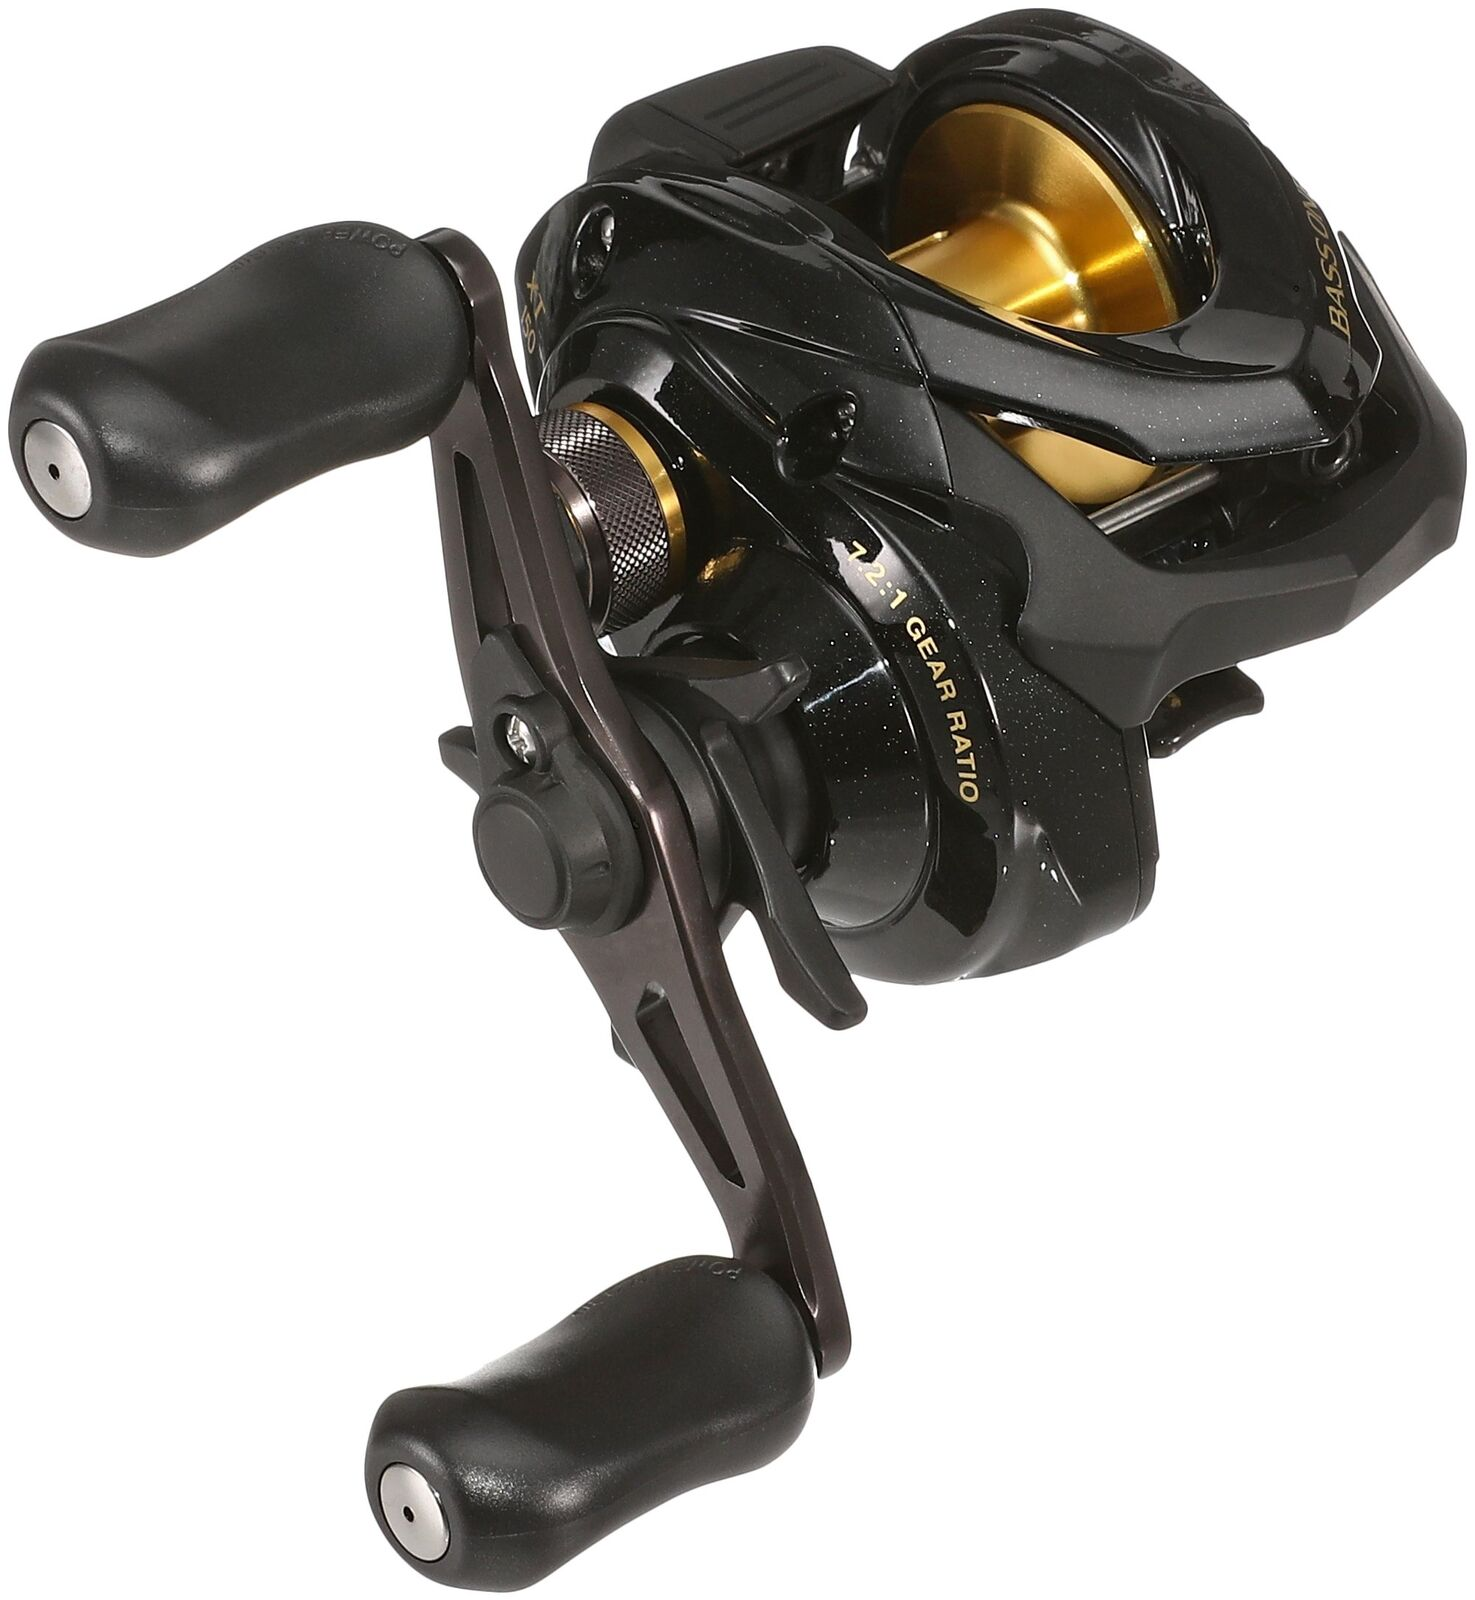 SHIMANO 17 Bass  One XT 150 Right Handle Bait Casting reel from Japan New   for sale online